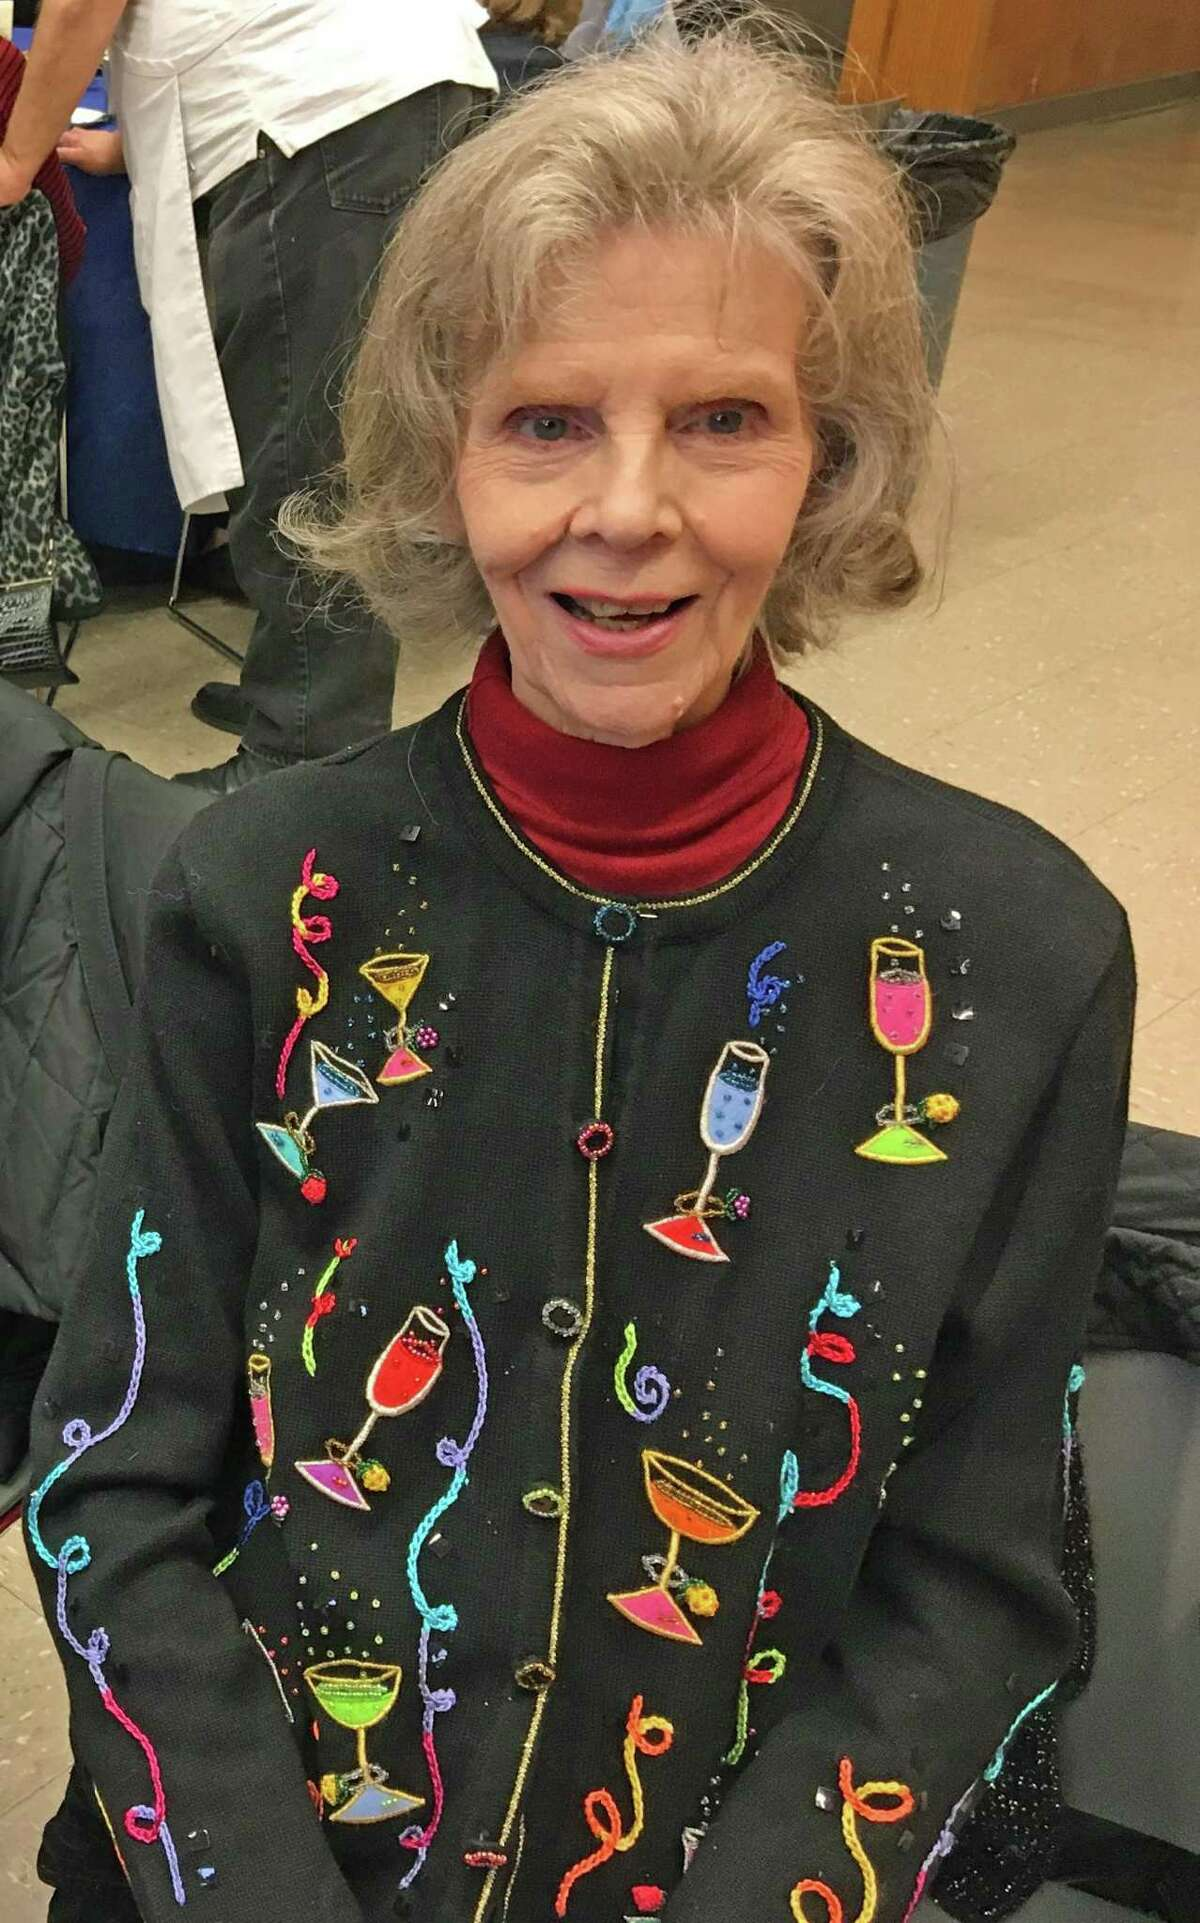 Gloria Mallozzi, 85 of Stamford, poses for a photo at a New Year's holiday party for older adults. One year into the pandemic, she reflected, and said positivity helped her get through the trials and tribulations.